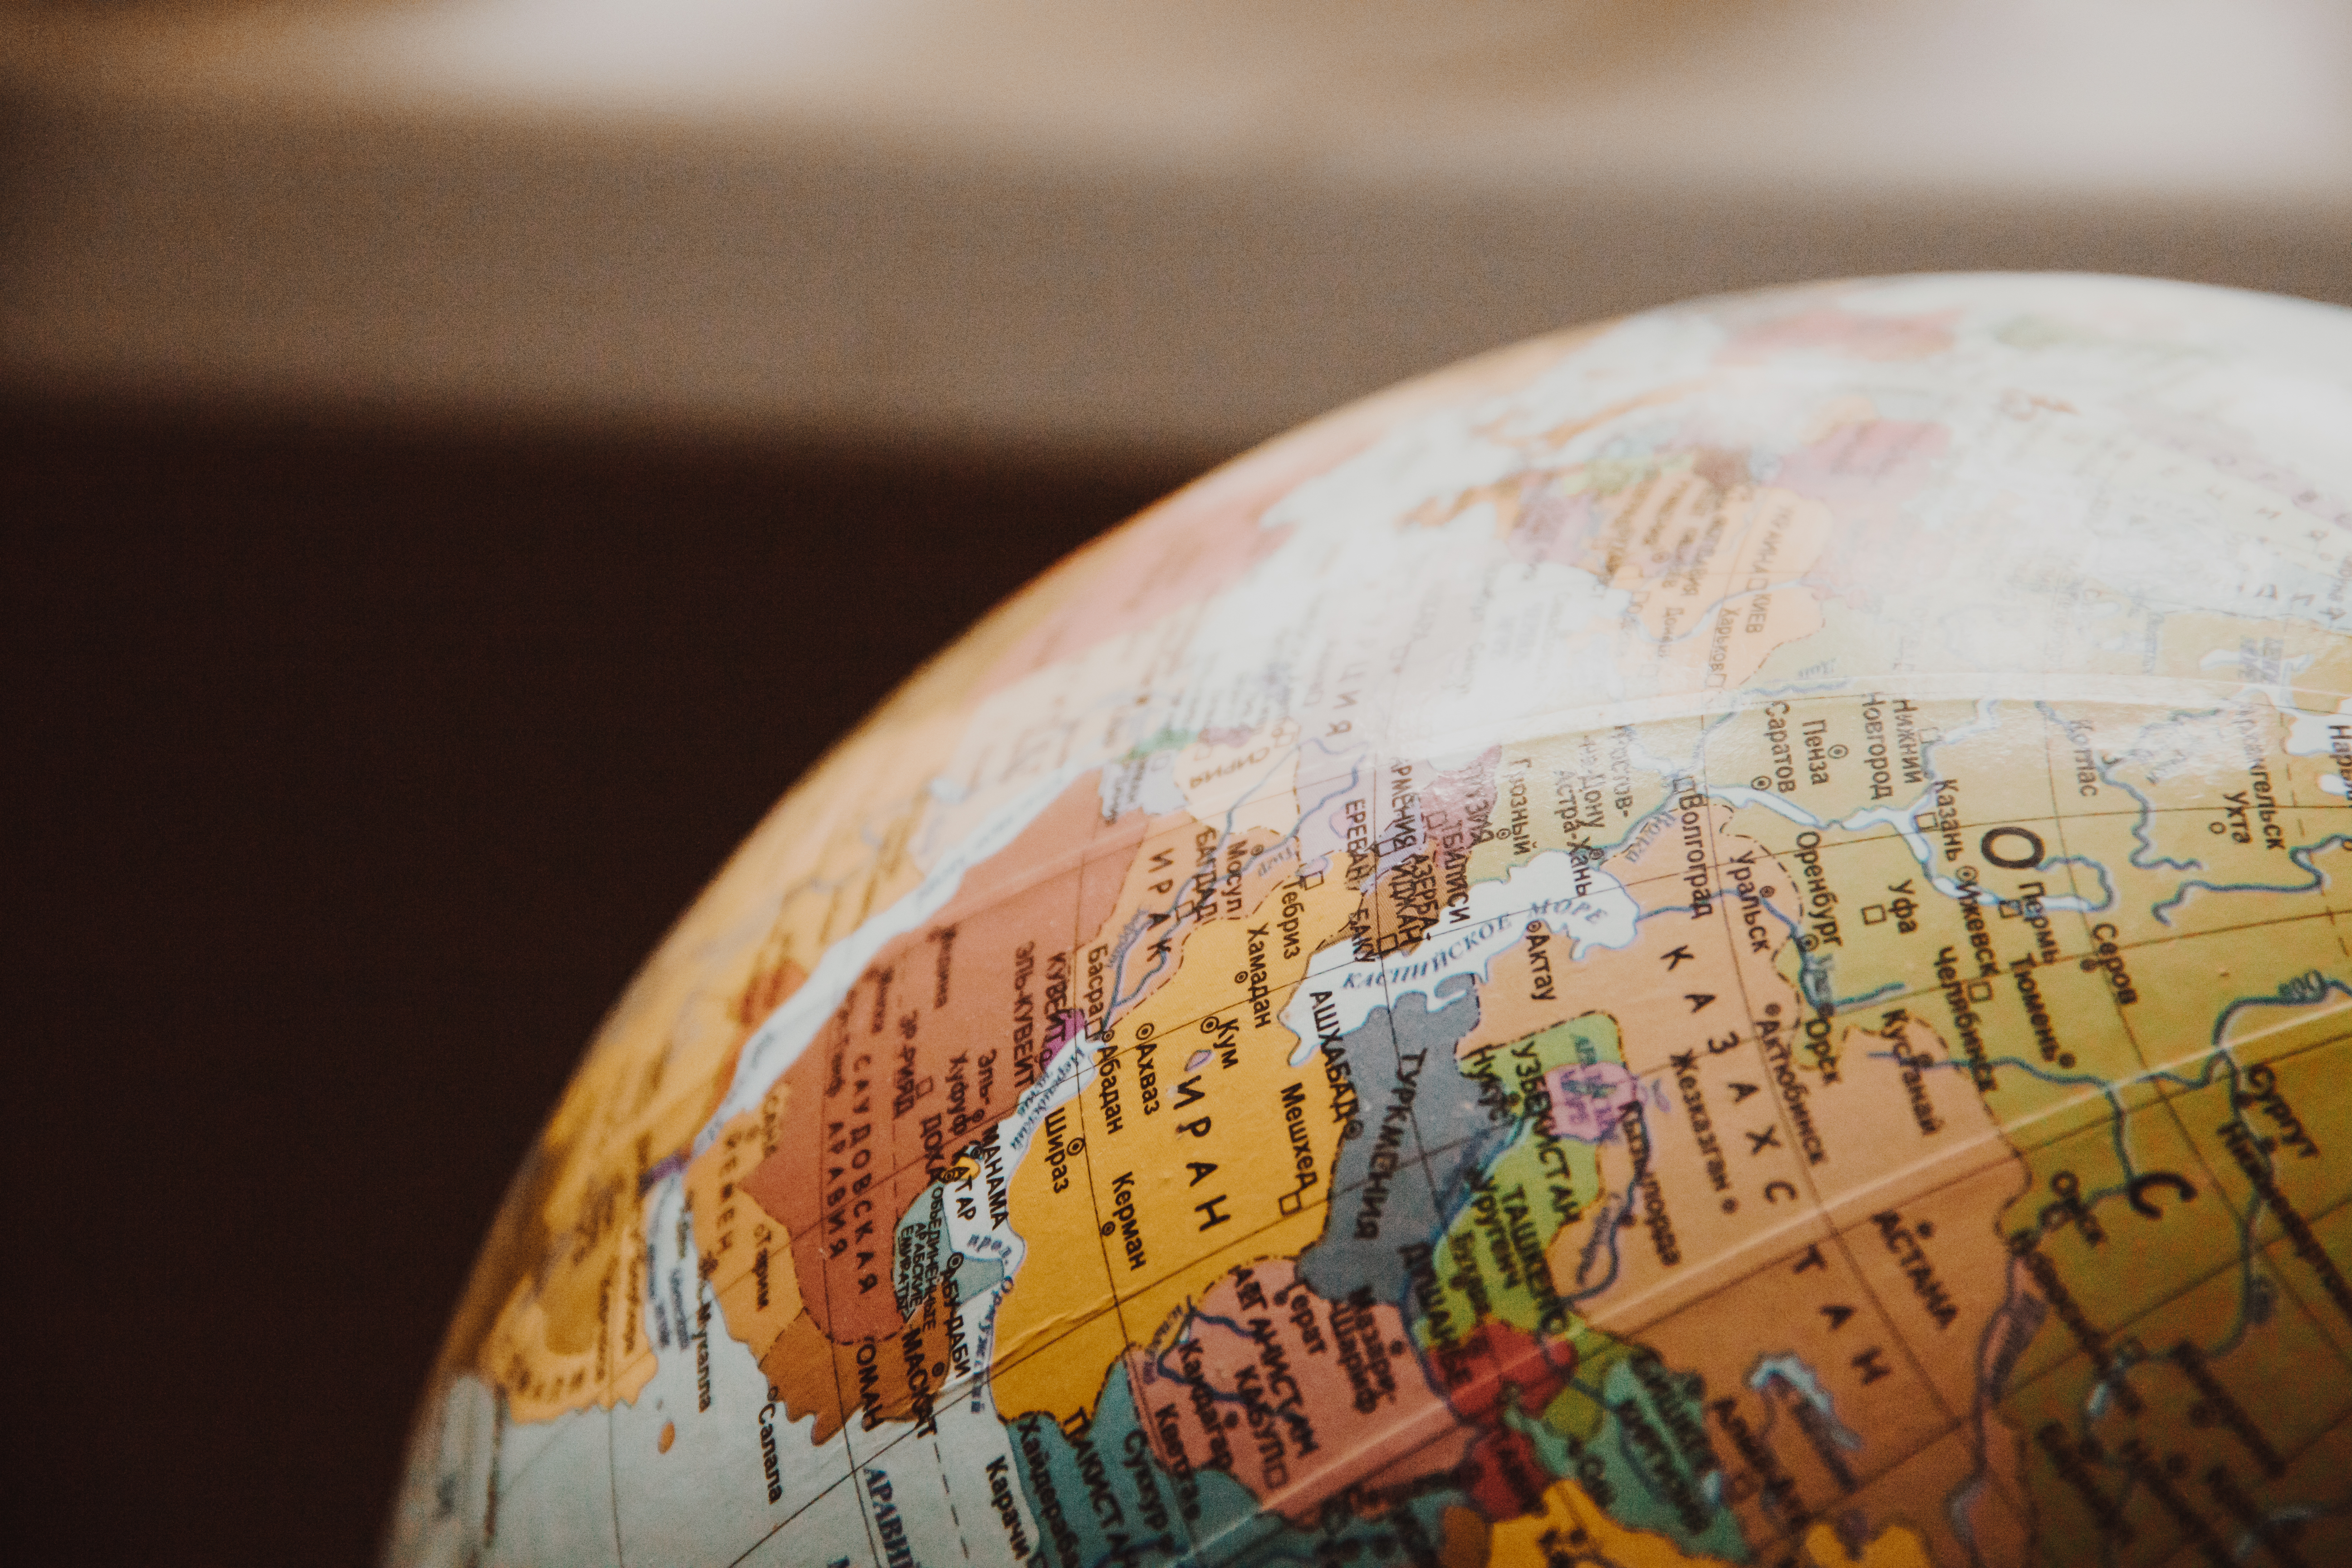 Scientific Historians Find Common Pathway in Complex Social FormationsShared by Every Region around the Globe